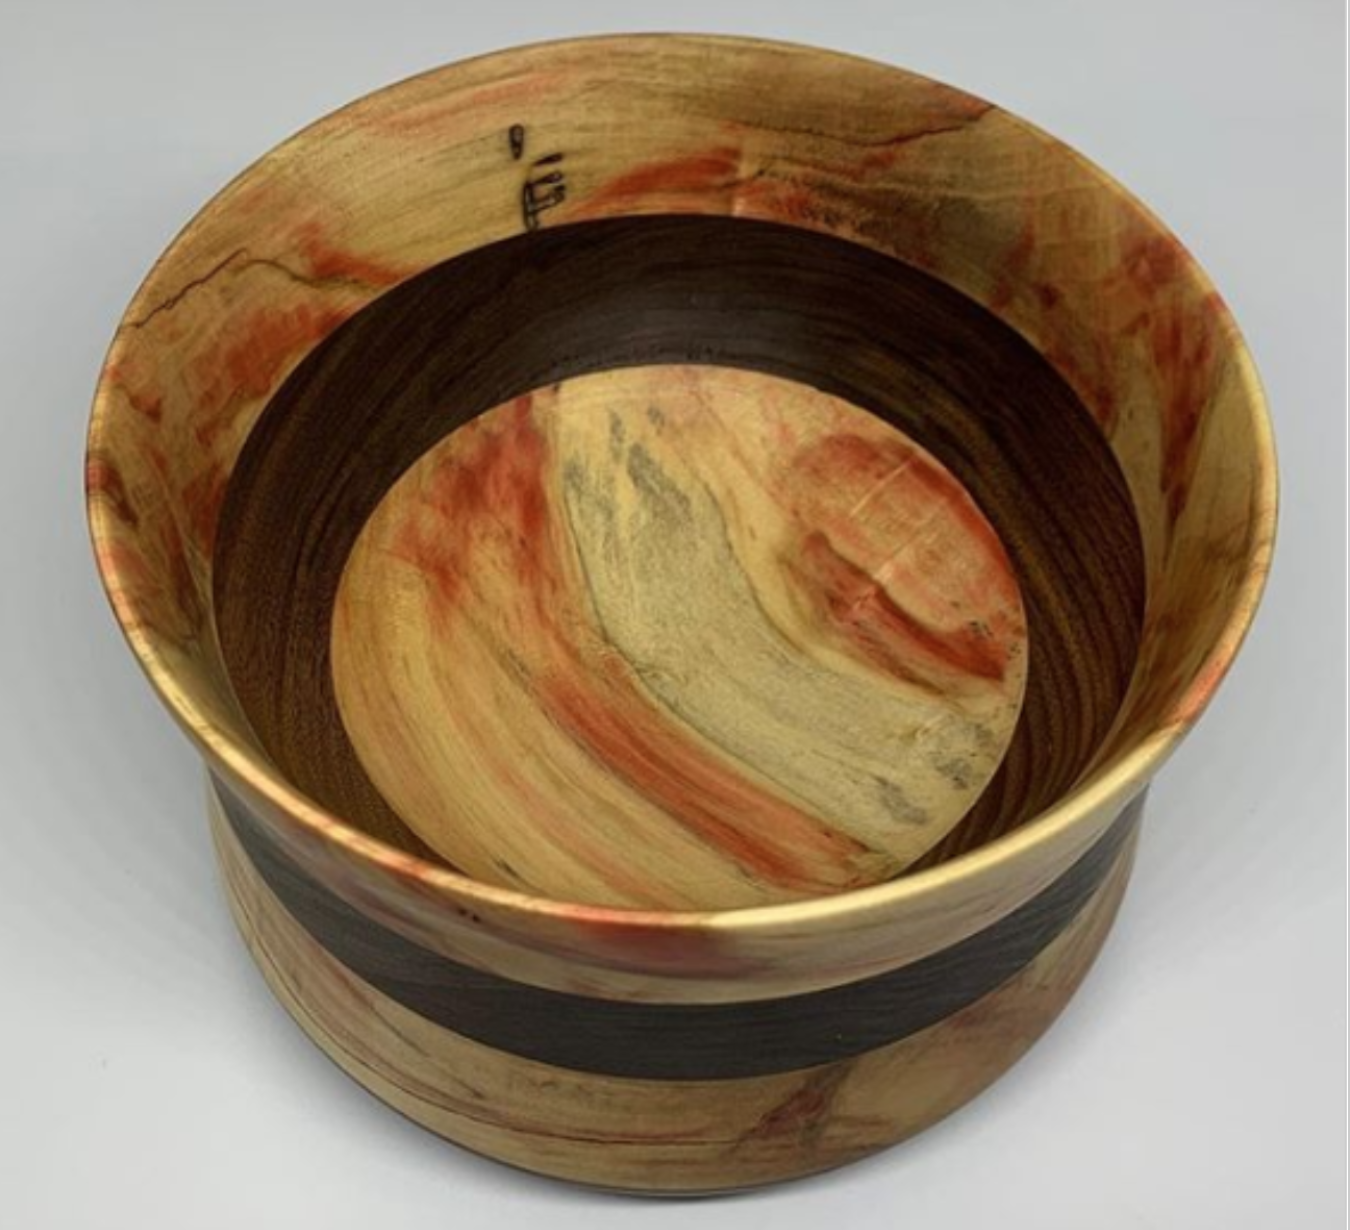 #5: Decorative Wooden Bowls - These hand made wooden bowls from Rustik Designs look great whether they're serving food, displaying fruit, or just as decoration.